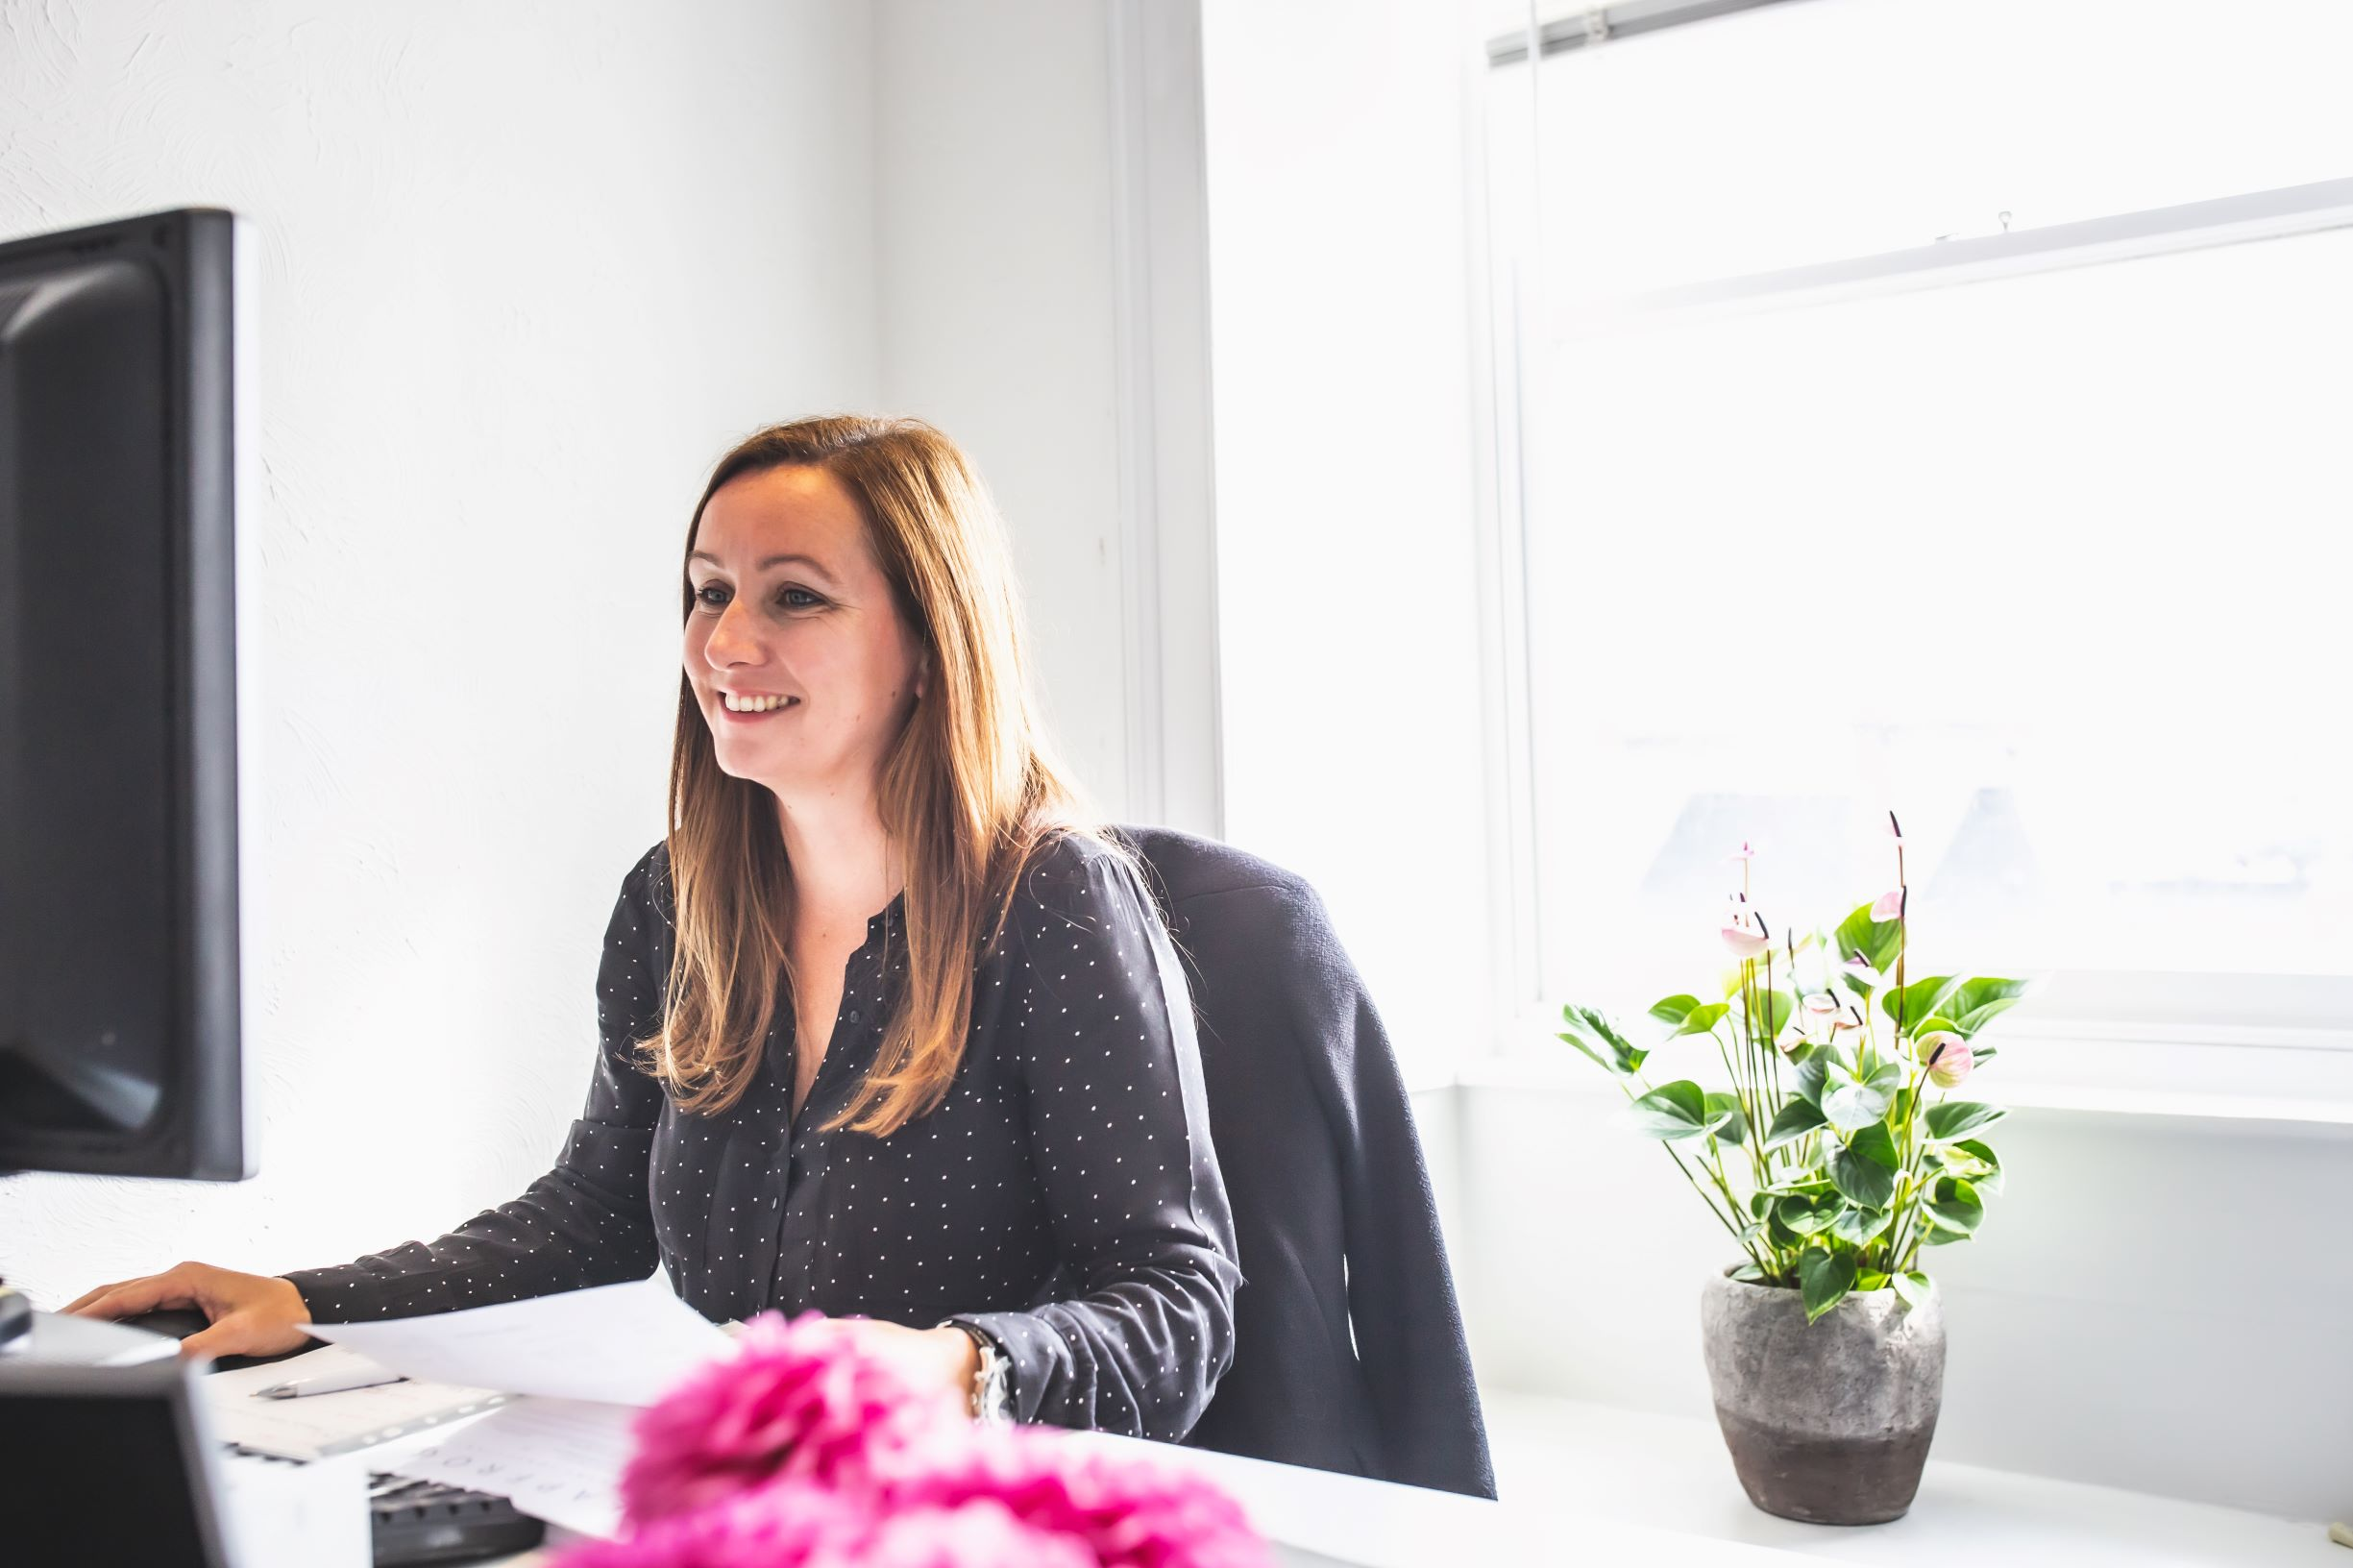 A day in the life- working from home: Laura